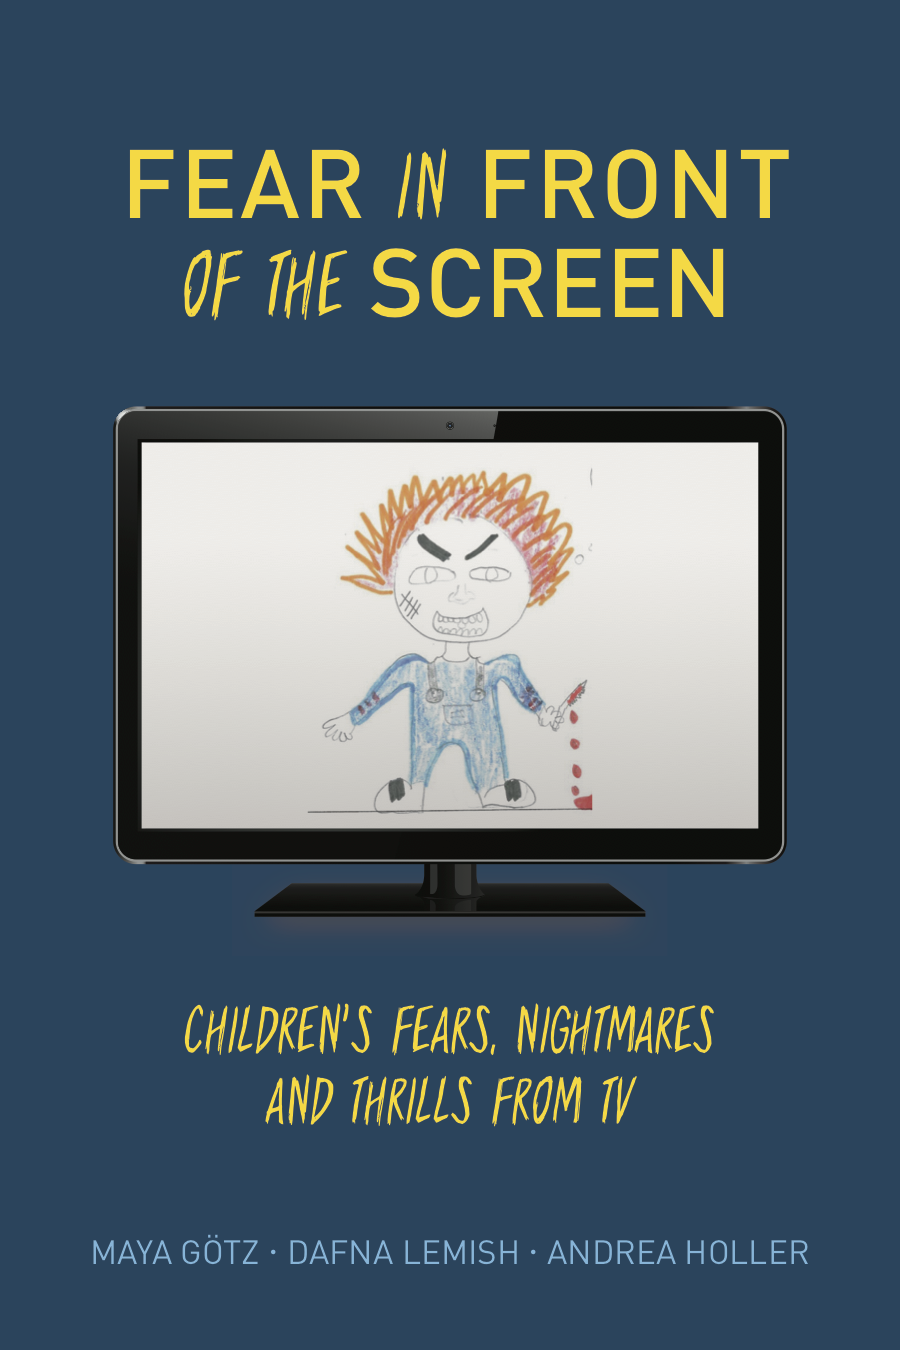 Want to learn more about… - fear experiences and also learn what 510 children from 5 countries told us about their nightmares from screen - Click here to check our book.